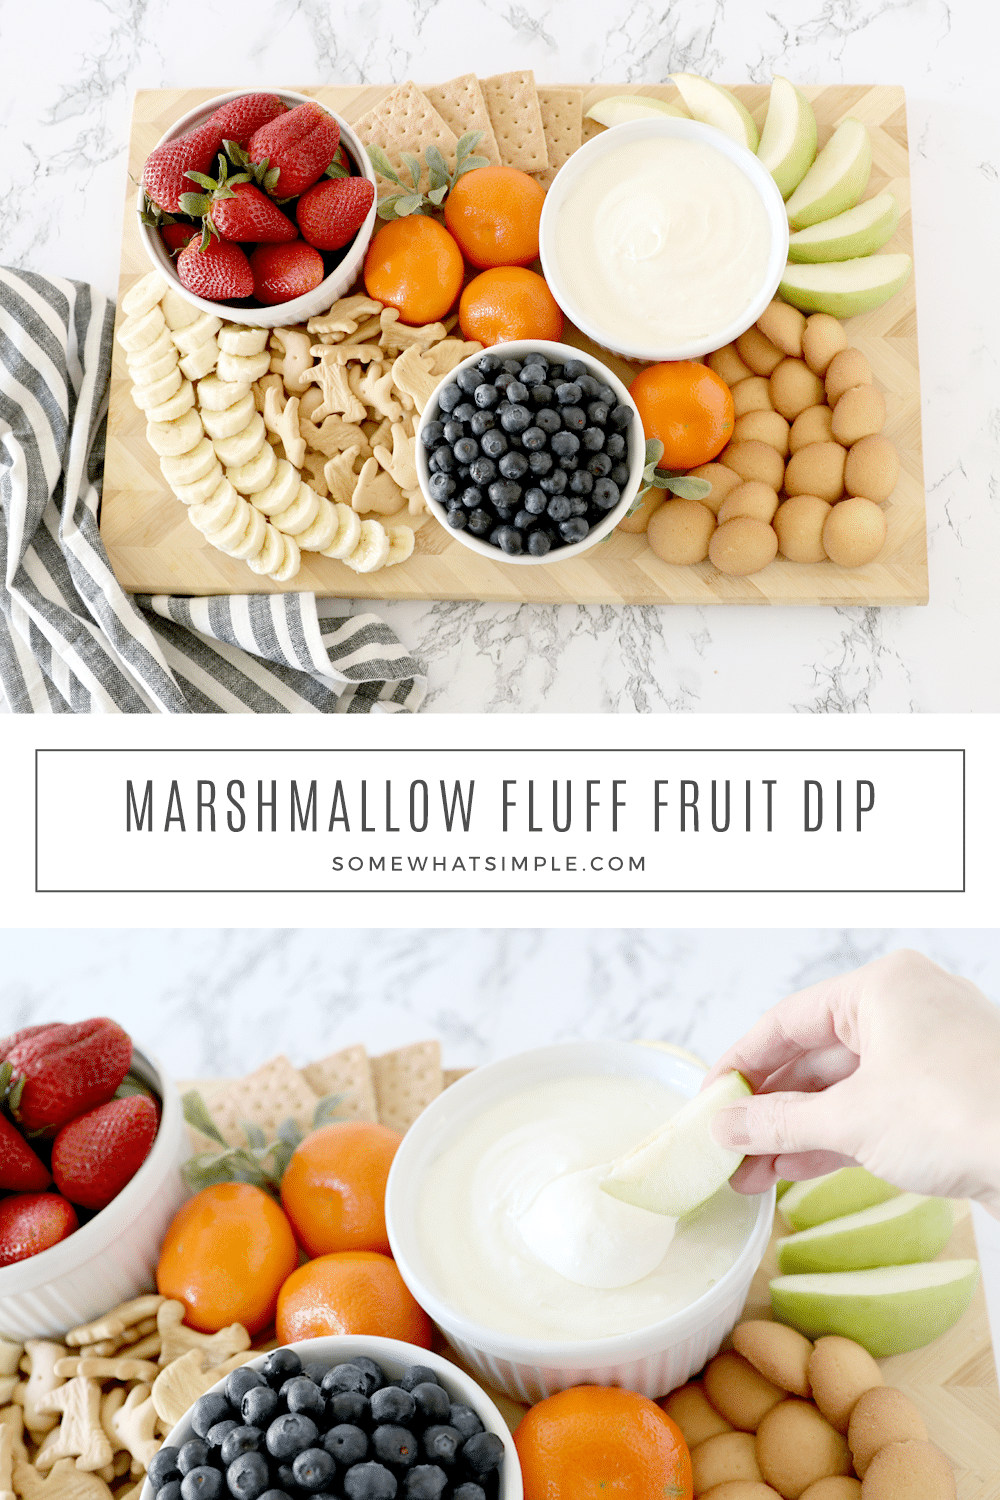 3 Ingredient Marshmallow Fluff Fruit Dip is simple to make, totally delicious, and will please a crowd! via @somewhatsimple